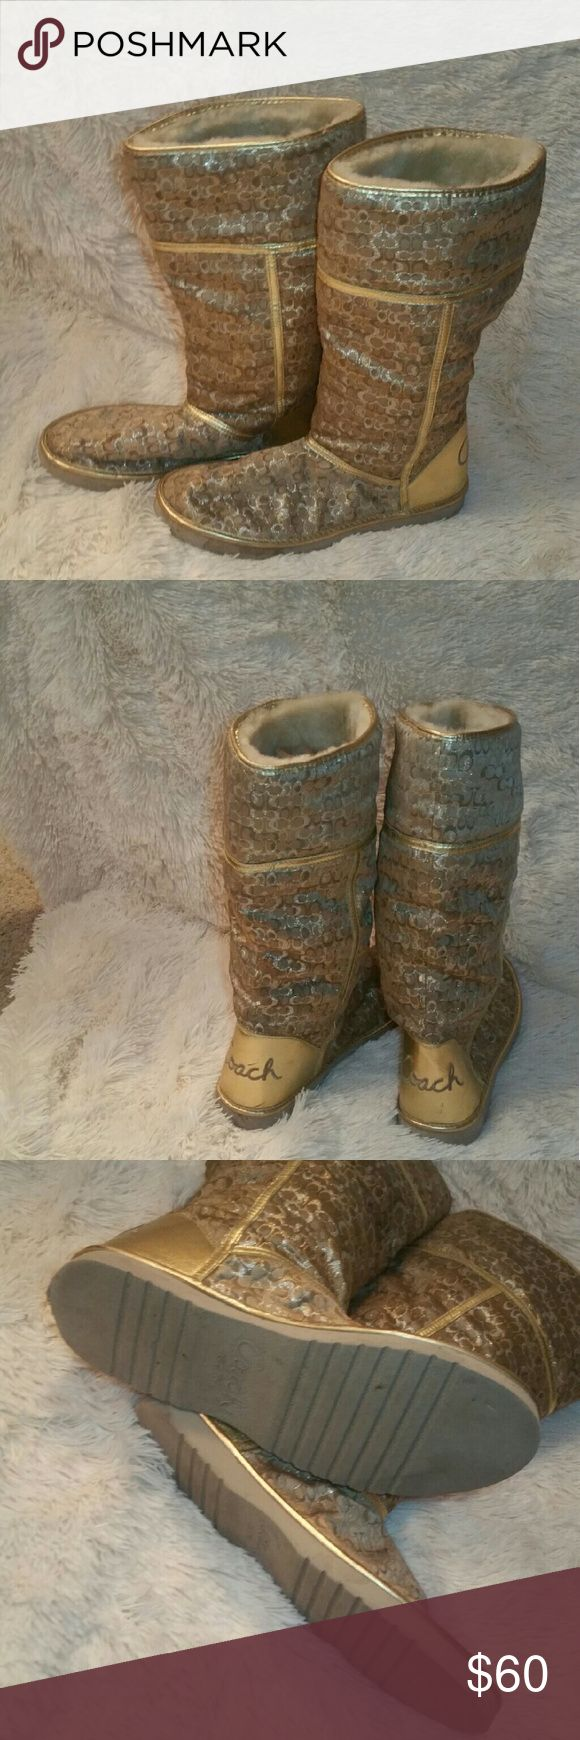 Fur Lined Coach Boots Authentic fur Lined Coach Boots. Worn twice. Excellent used condition. Lots of use still left on them. No major flaws, just small scuffs here and there Coach Shoes Winter & Rain Boots